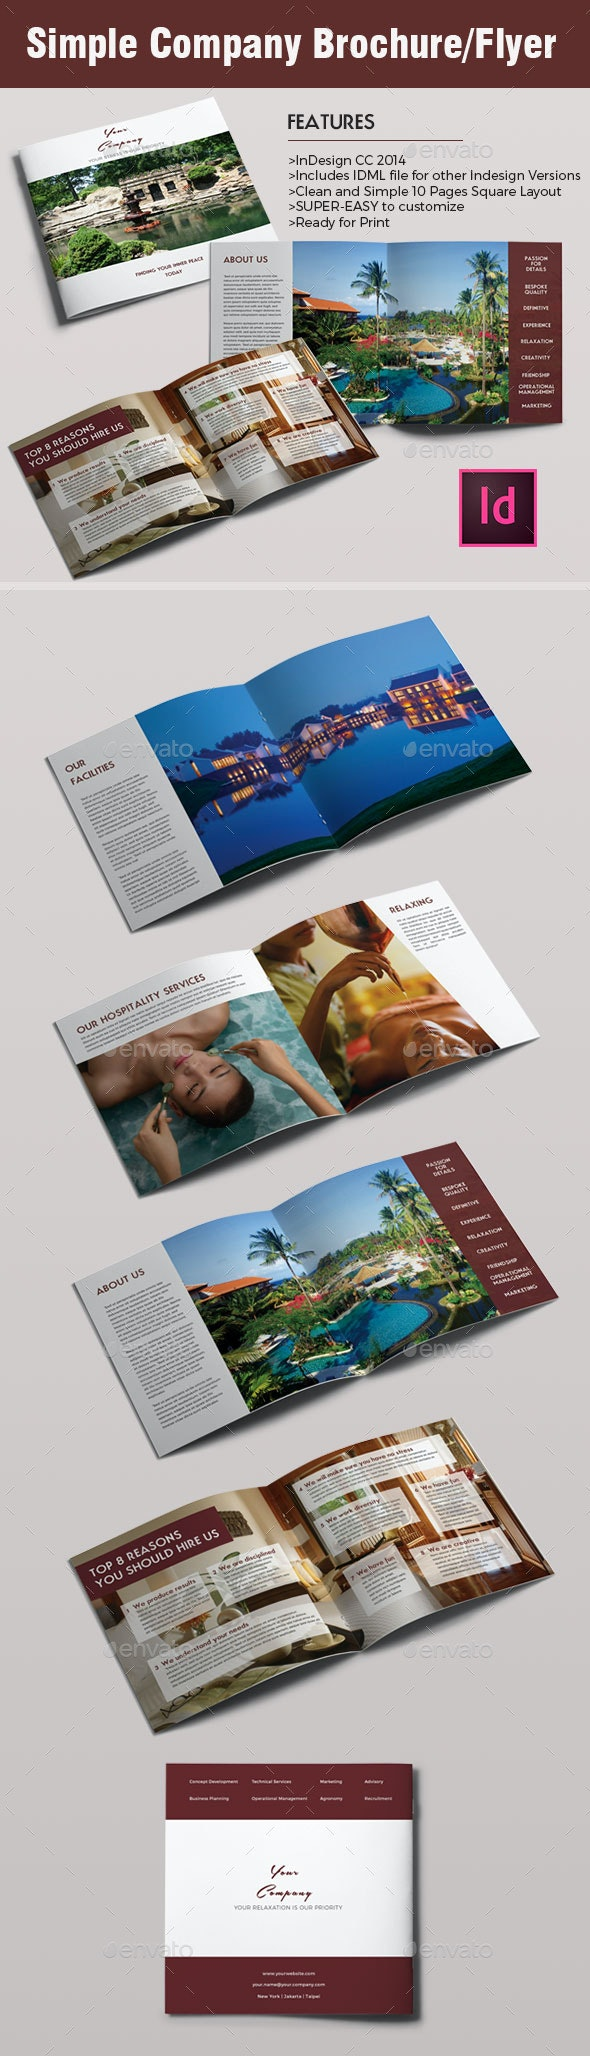 Simple Modern Company Brochure or Flyer Template - Brochures Print Templates